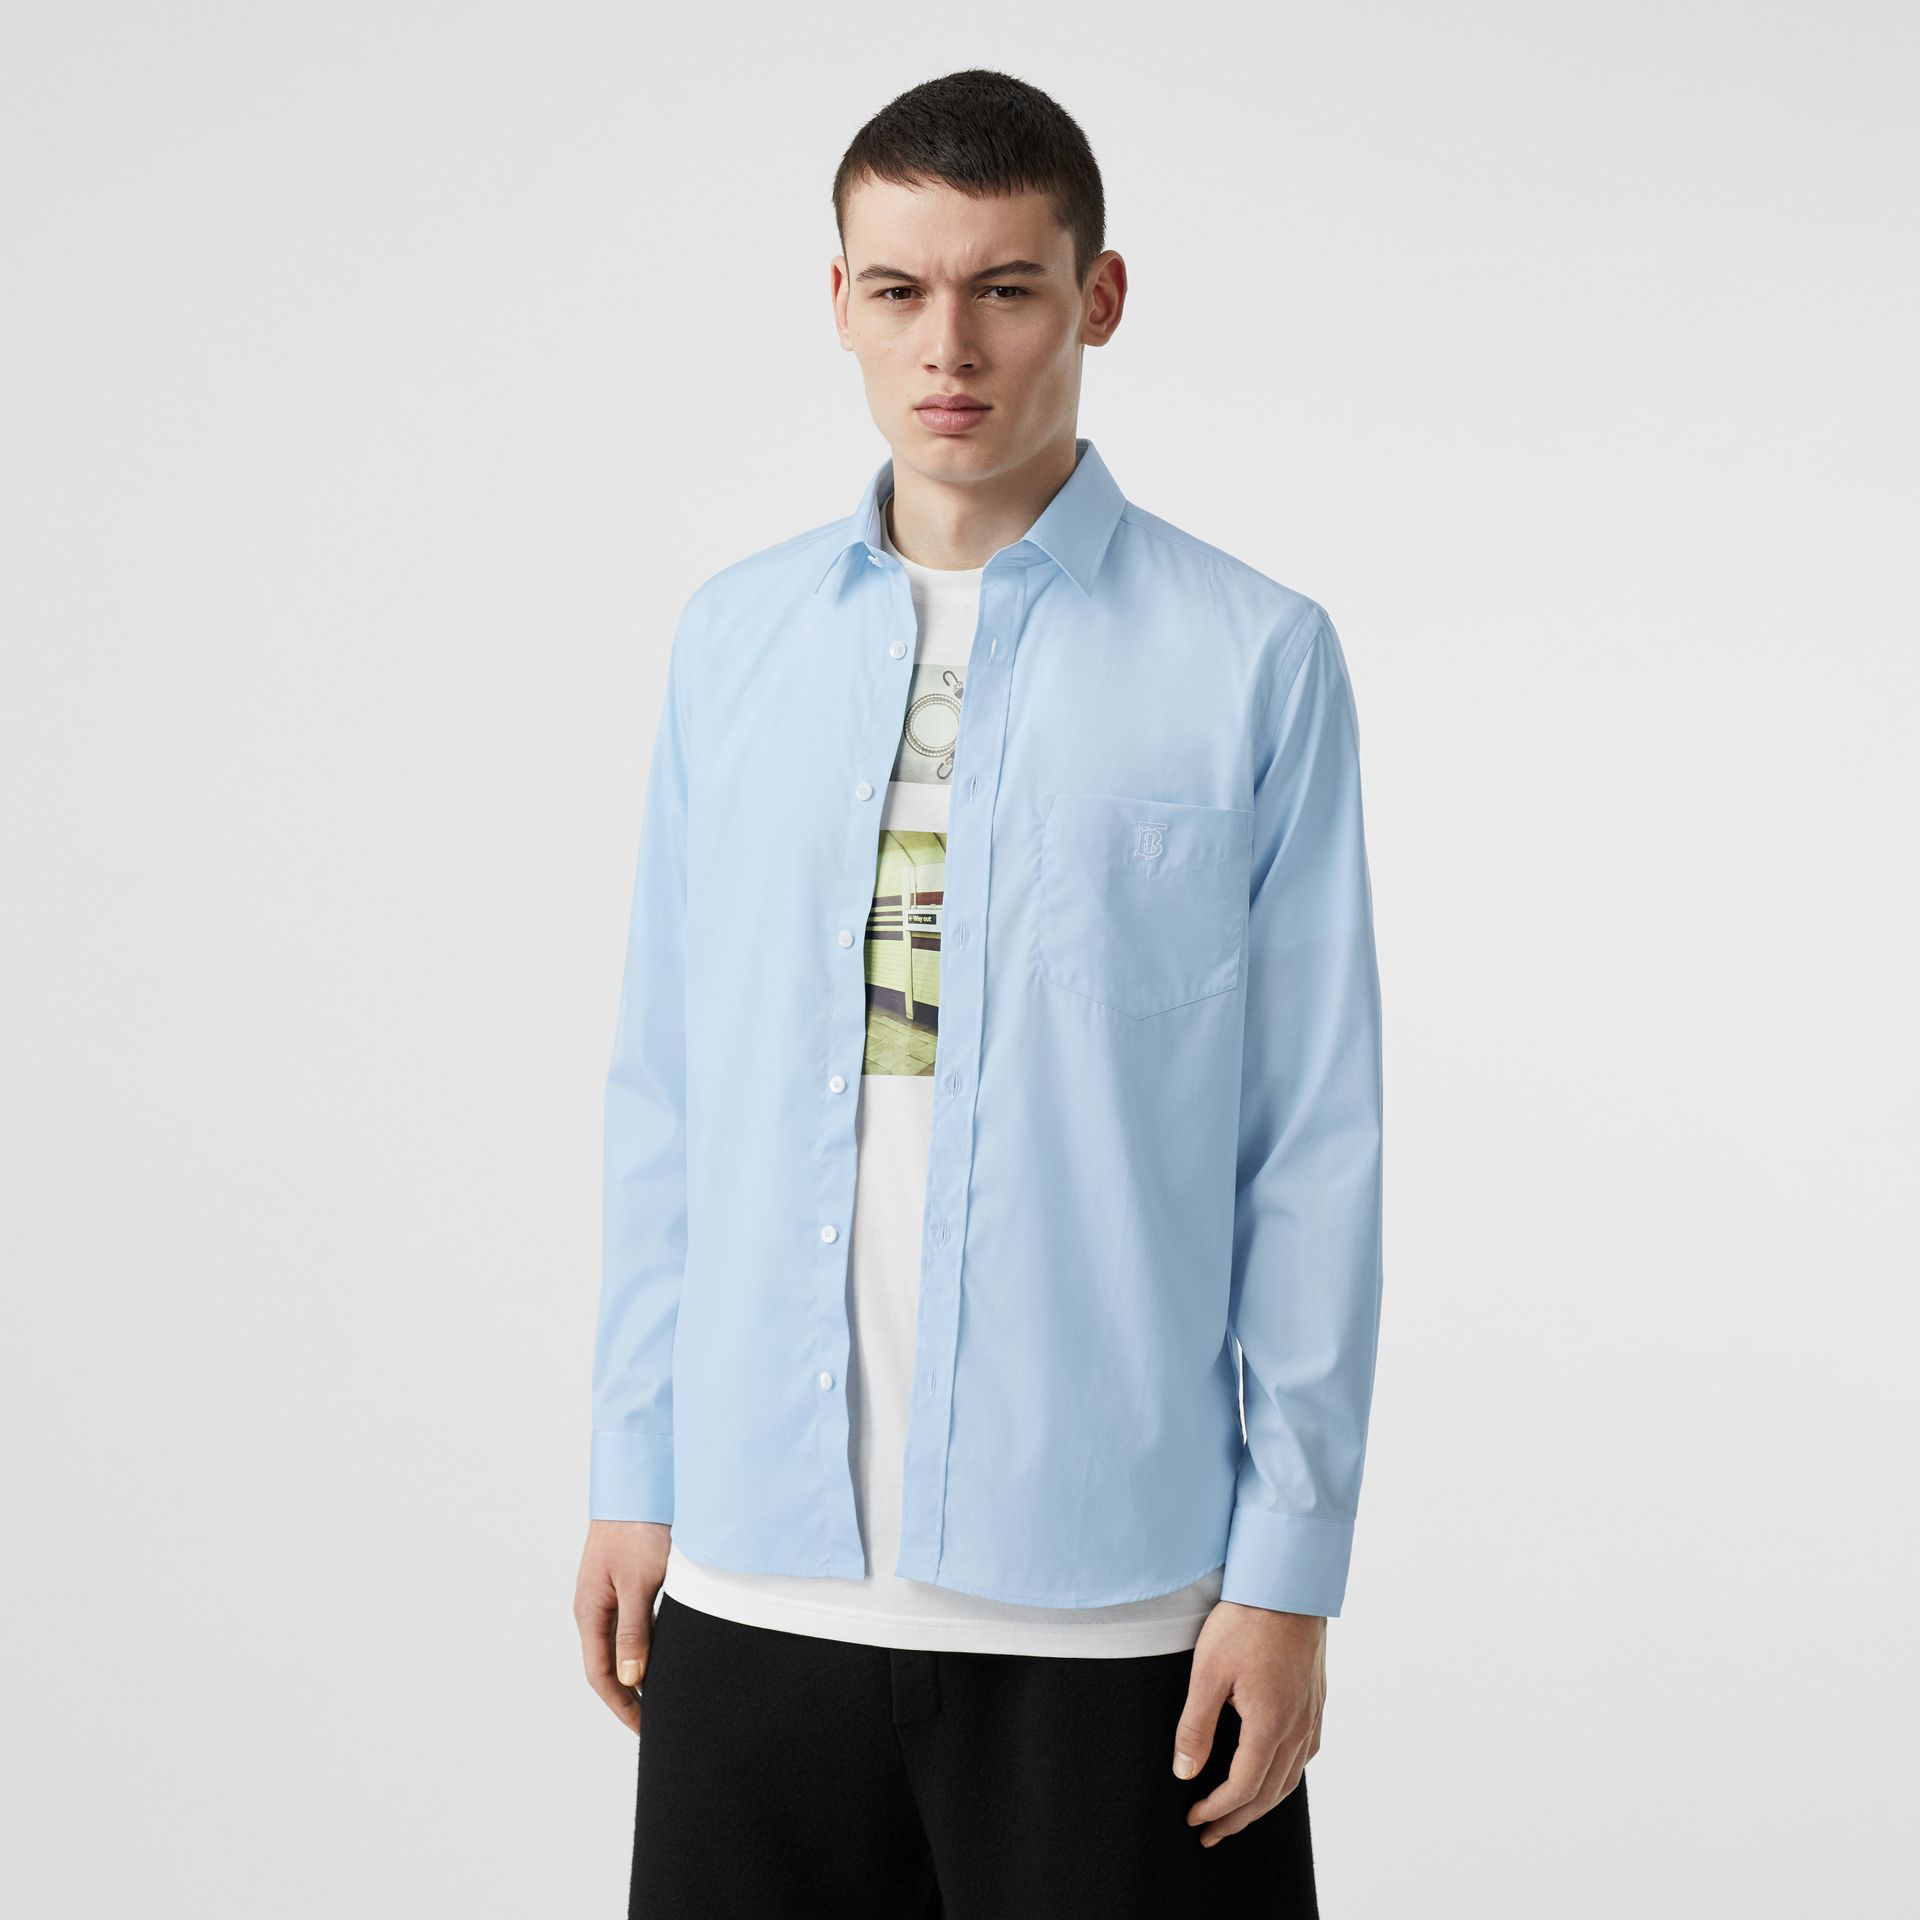 Monogram Motif Stretch Cotton Poplin Shirt in Pale Blue - Men | Burberry - gallery image 4